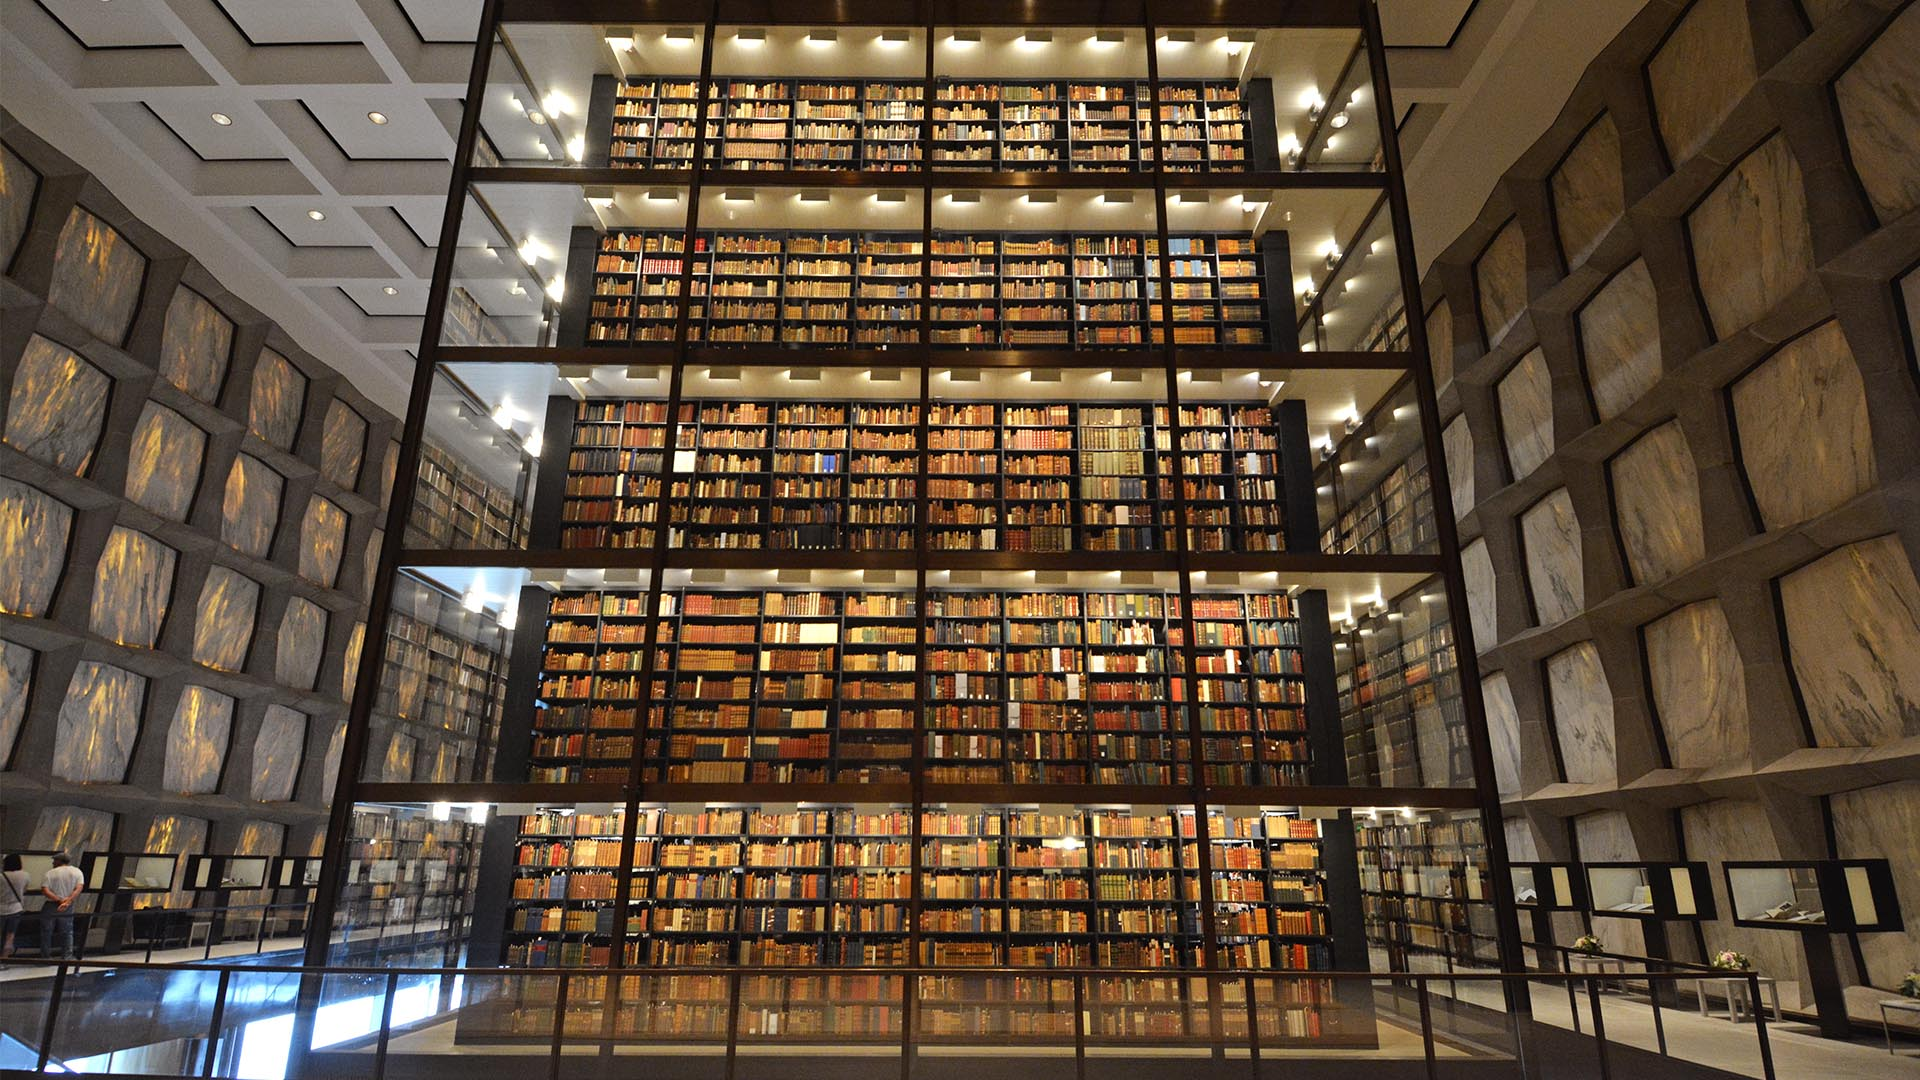 A photograph of the inside of the Beinecke Library.